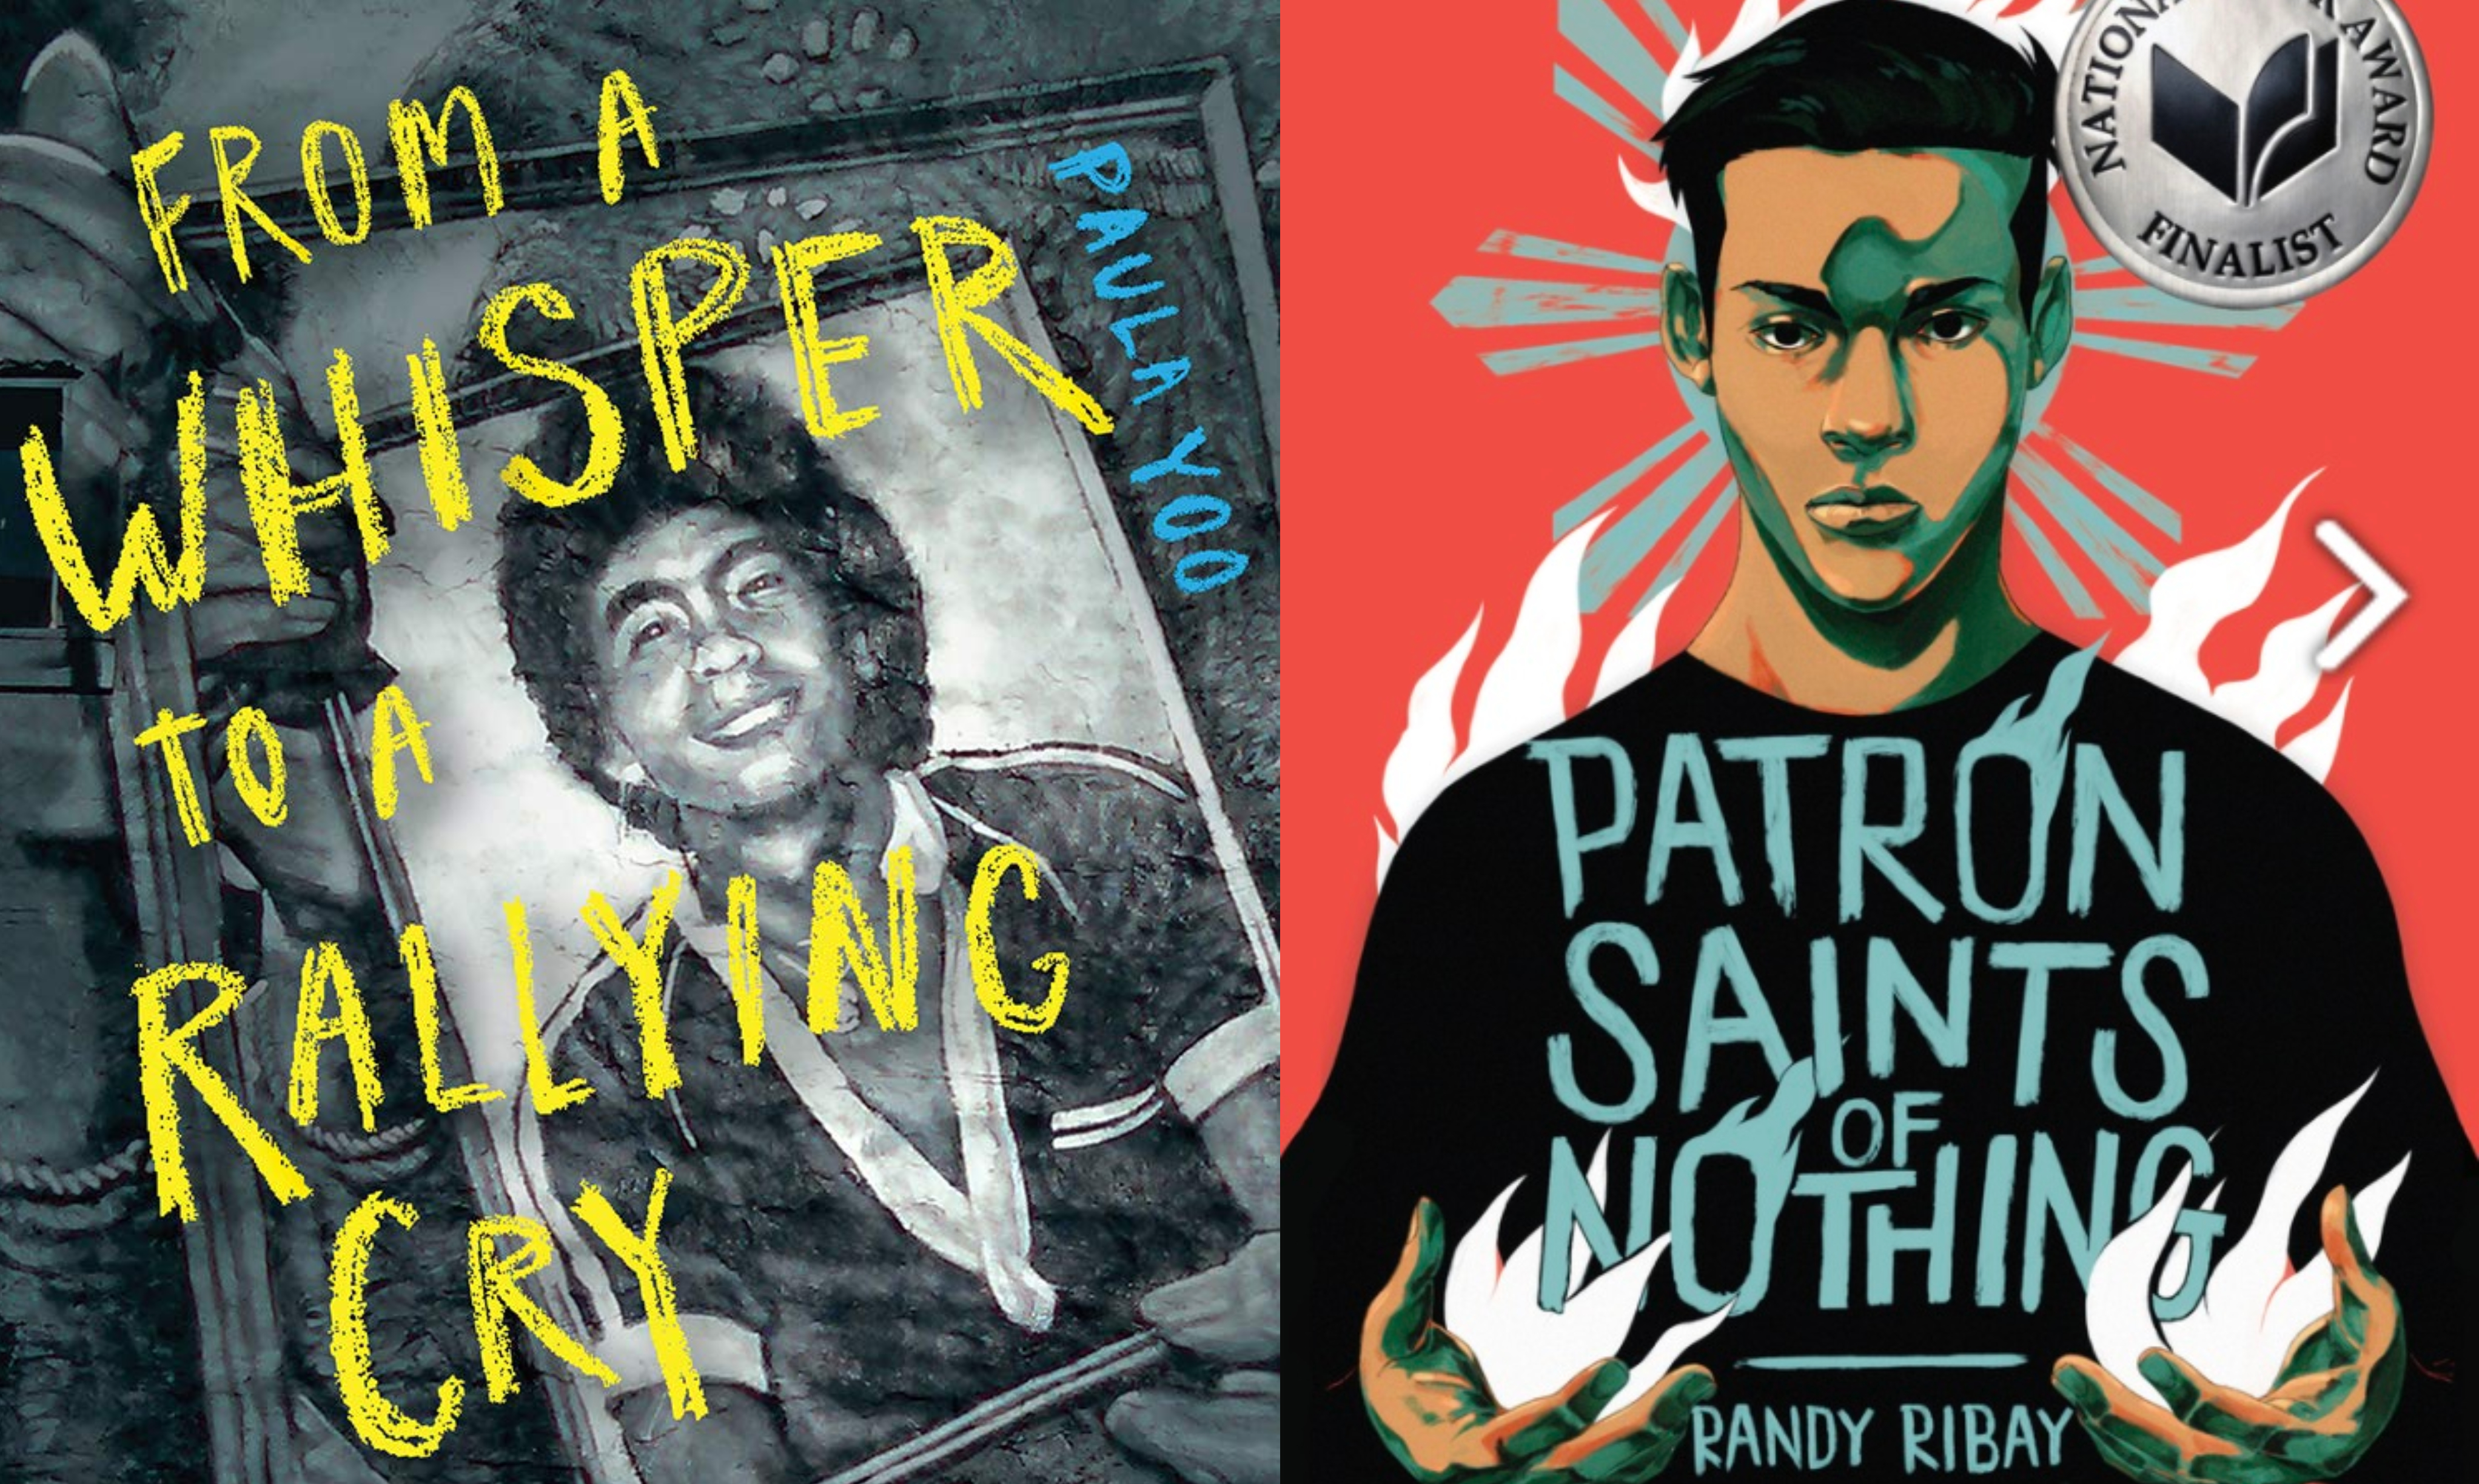 Portions of the covers of From a Whisper to a Rallying Cry (Norton Young Readers, 2021) and Patron Saints of Nothing (Kokila, 2019).